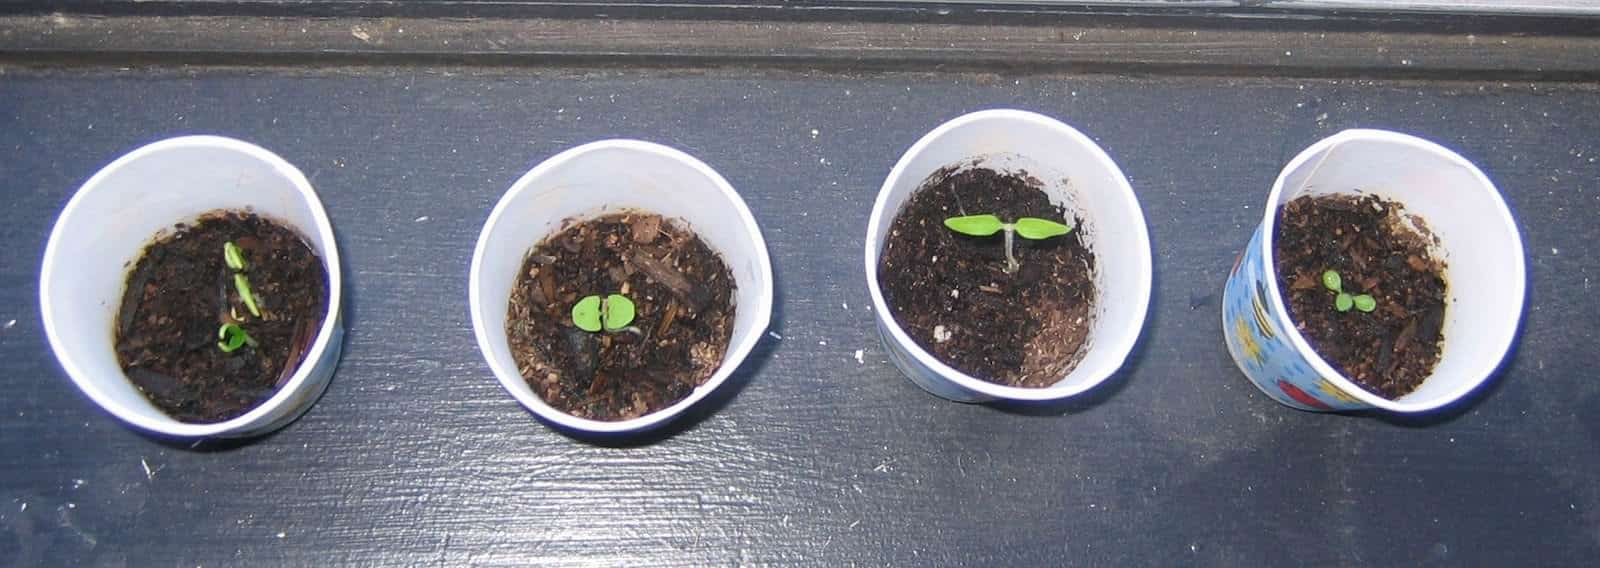 Biodegradable seedling cups.